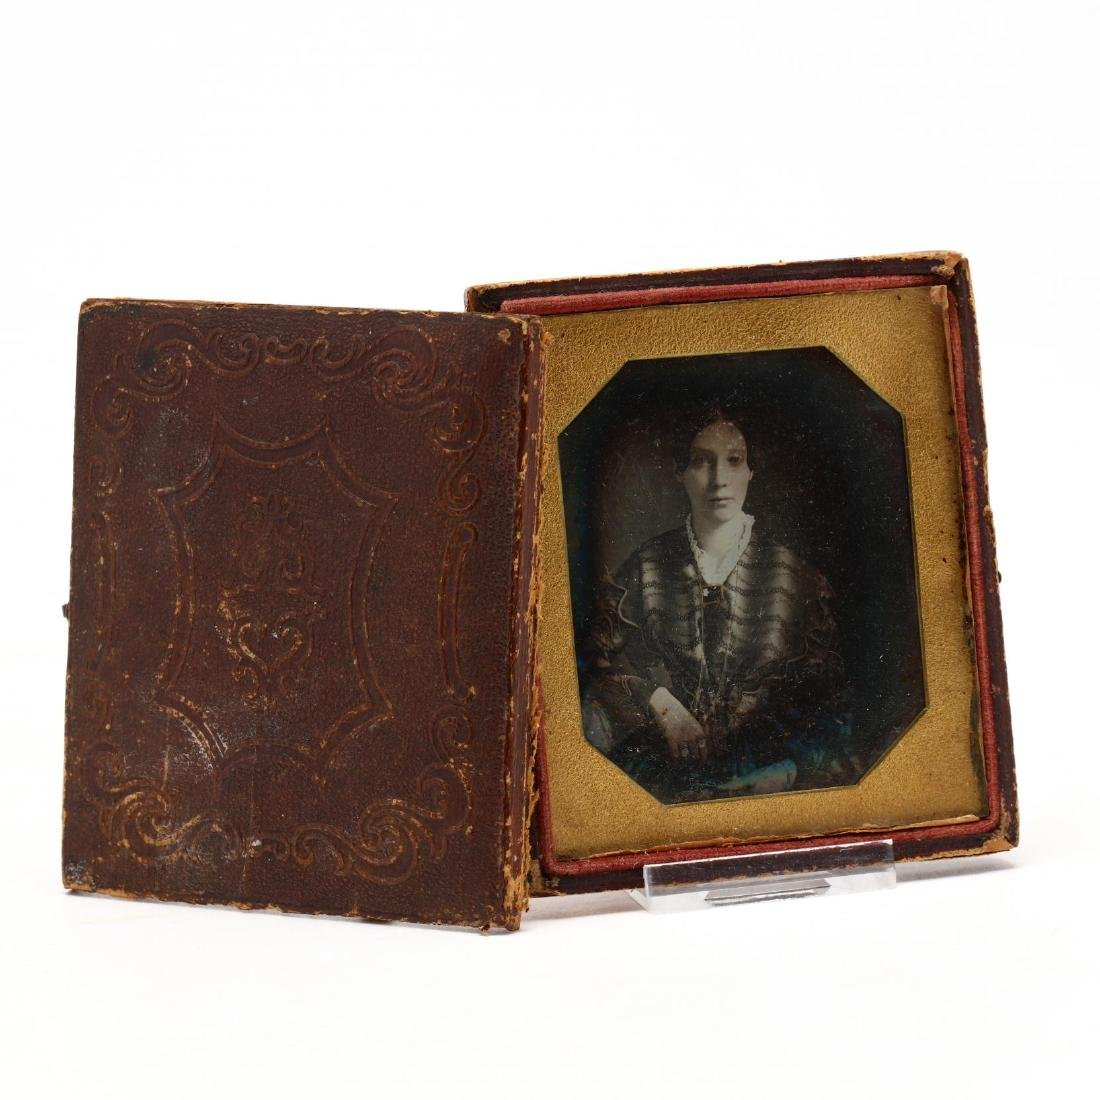 Identified Sixth Plate Daguerreotype of a Comely Young